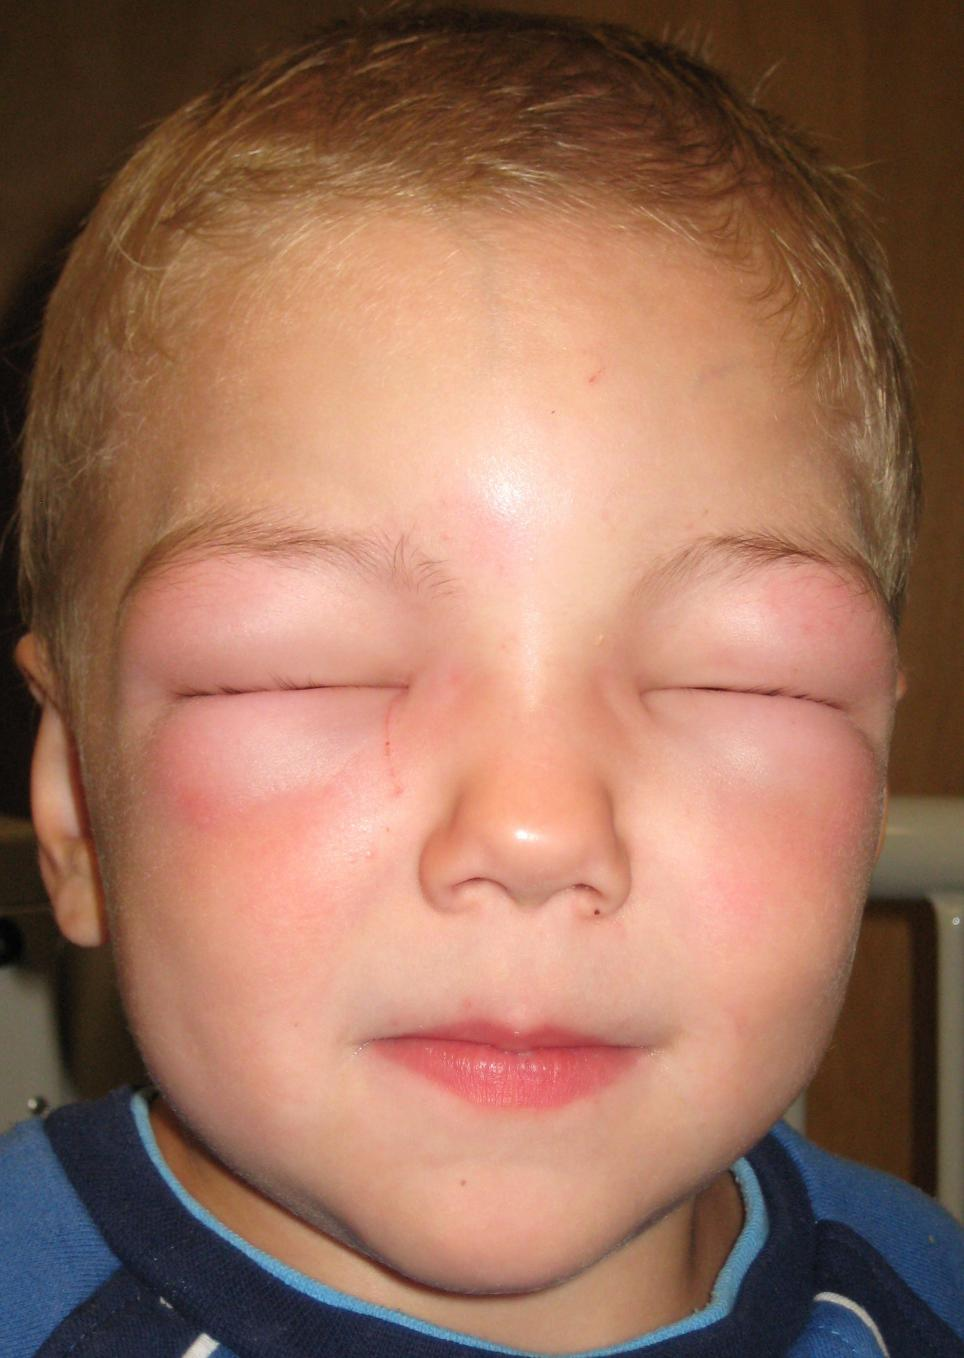 Causes And Overcome The Face That Is Allergic To Dust?